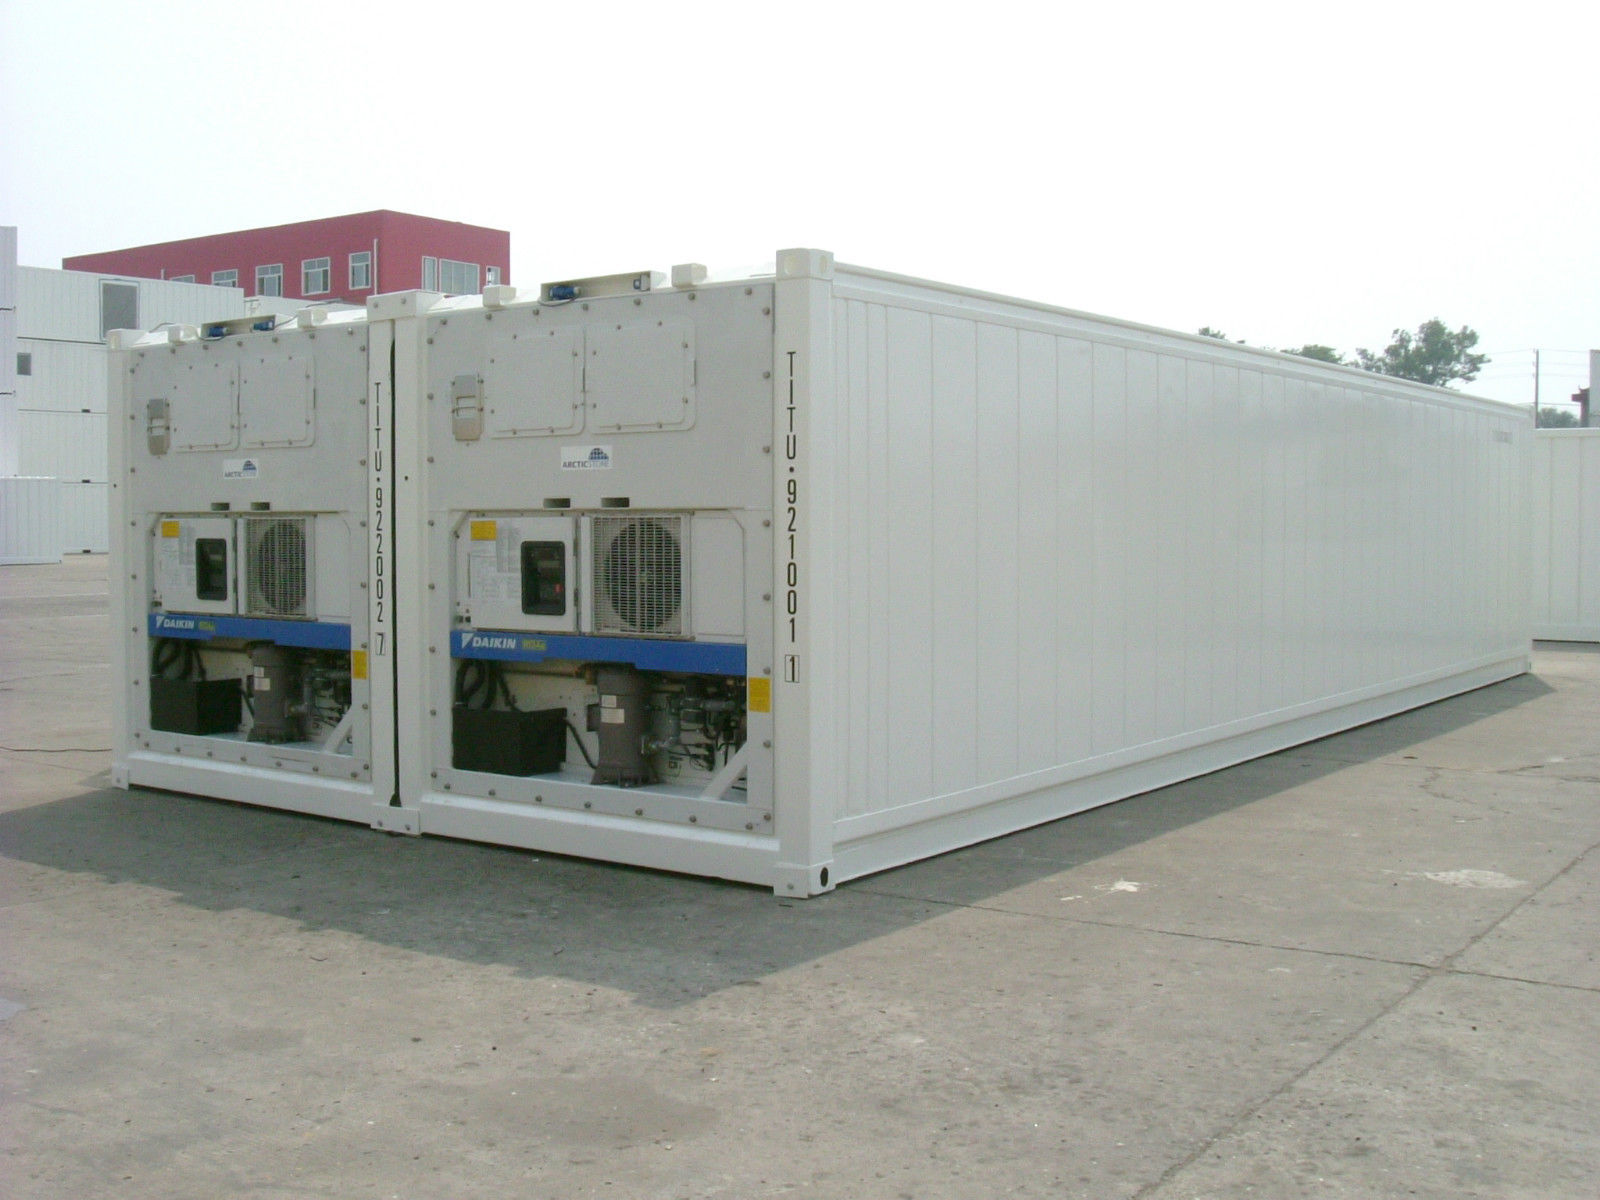 20' and 40' High cube Refrigerated Container - Temperature Controlled Storage Unit -Priced to Move